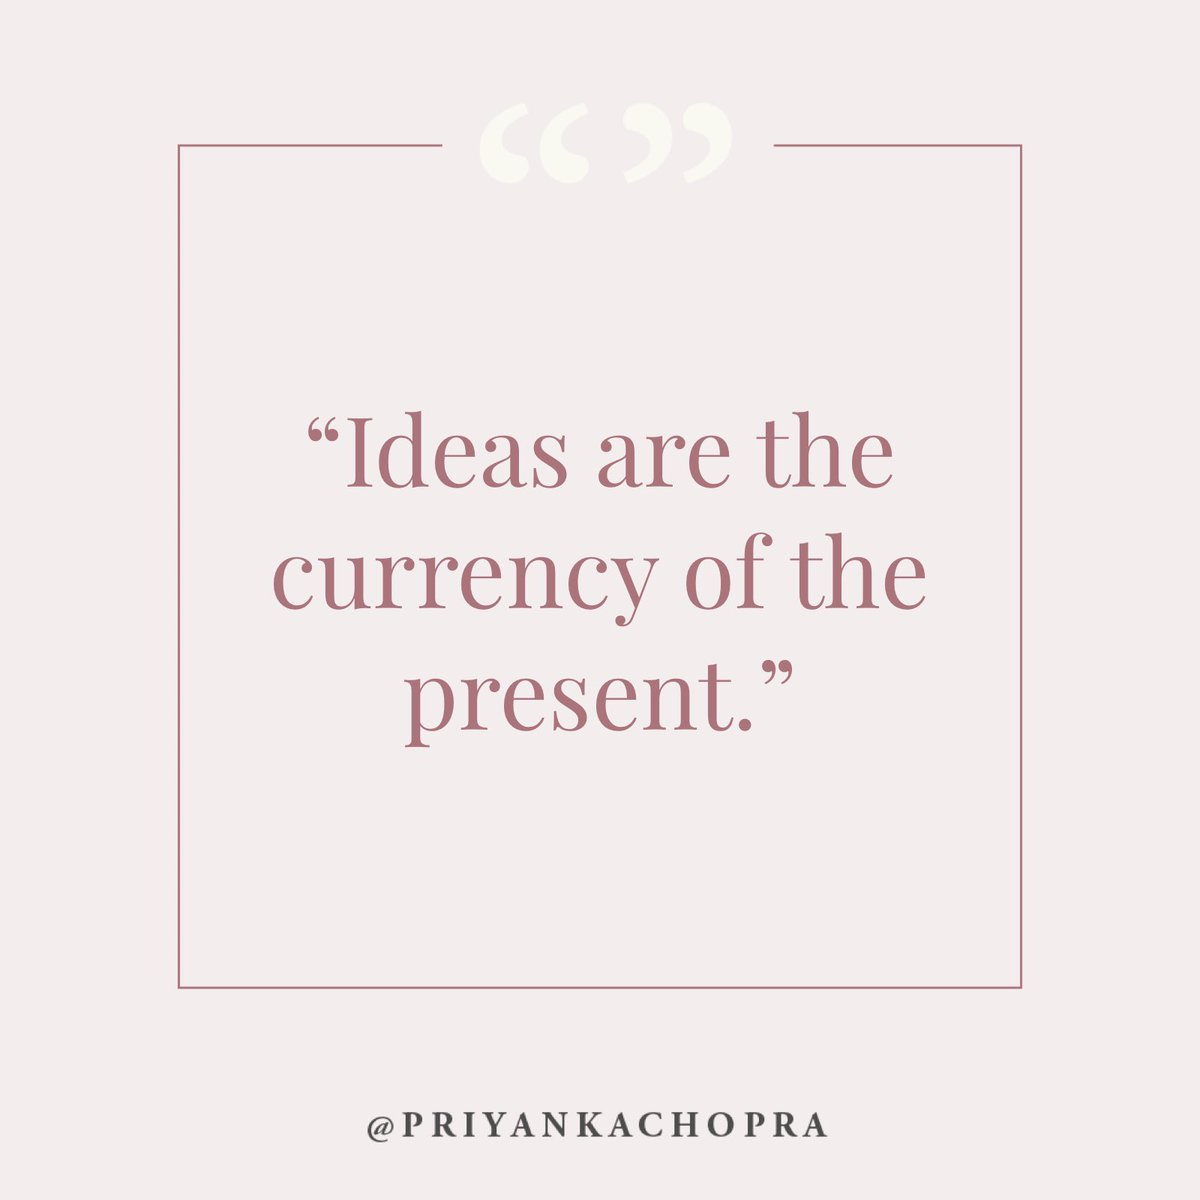 Everything starts with an idea... https://t.co/hDNLBkxLZe